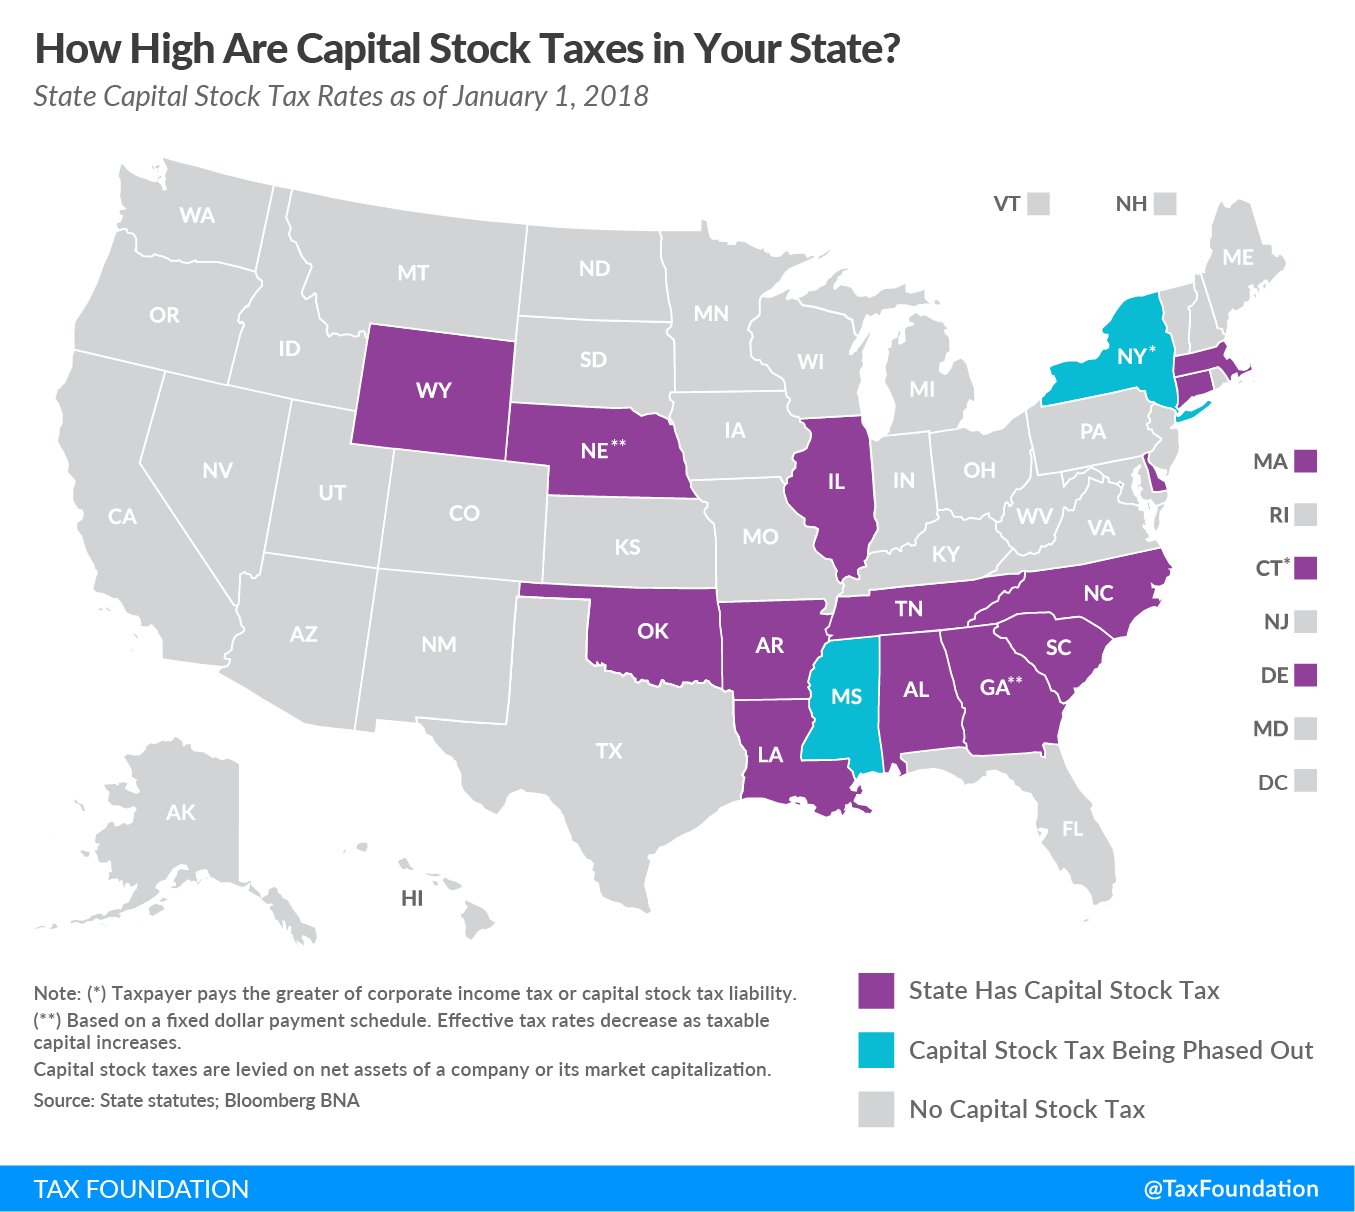 How high are capital stock taxes in your state? 2018